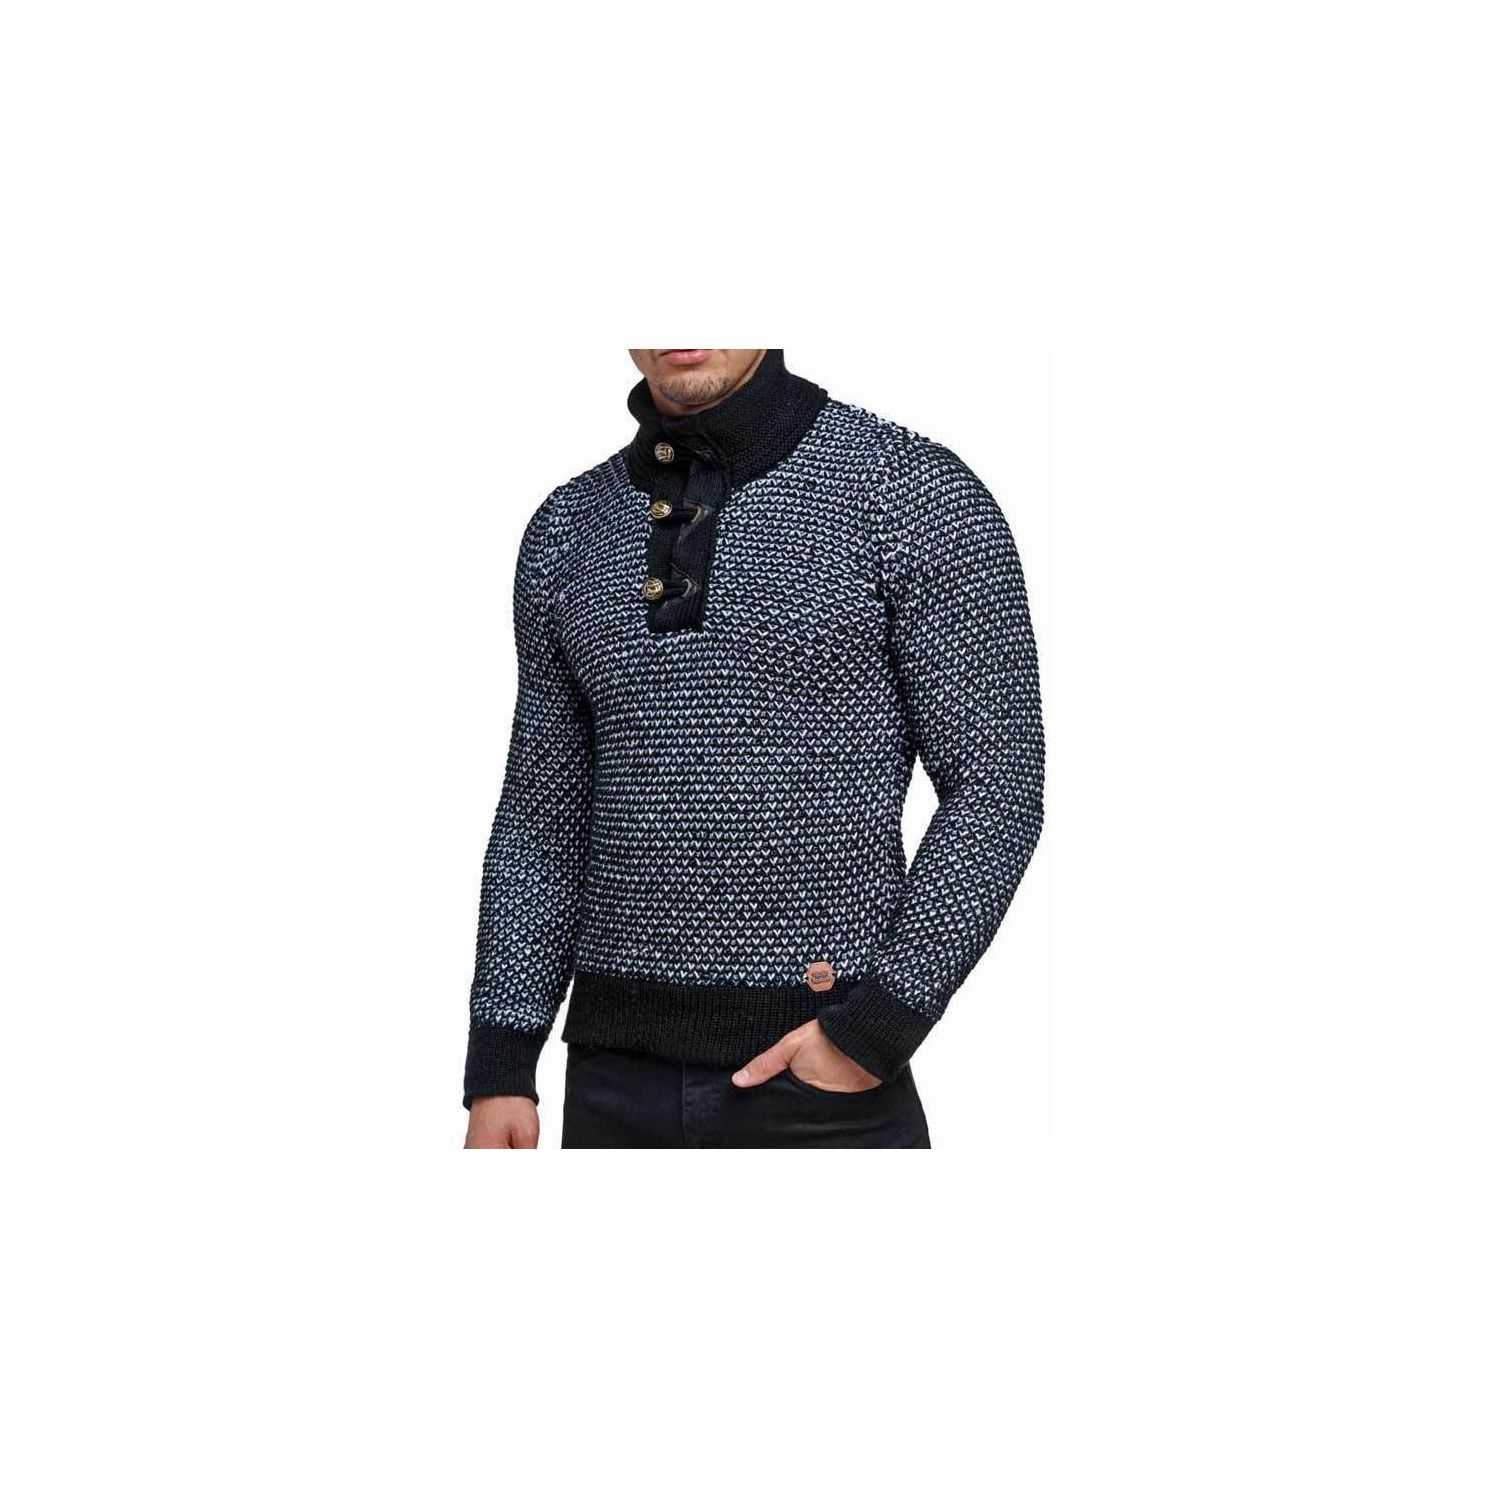 caefa3f50bb BESTSTYLE- Pull chaud pas cher homme noir col montant mode